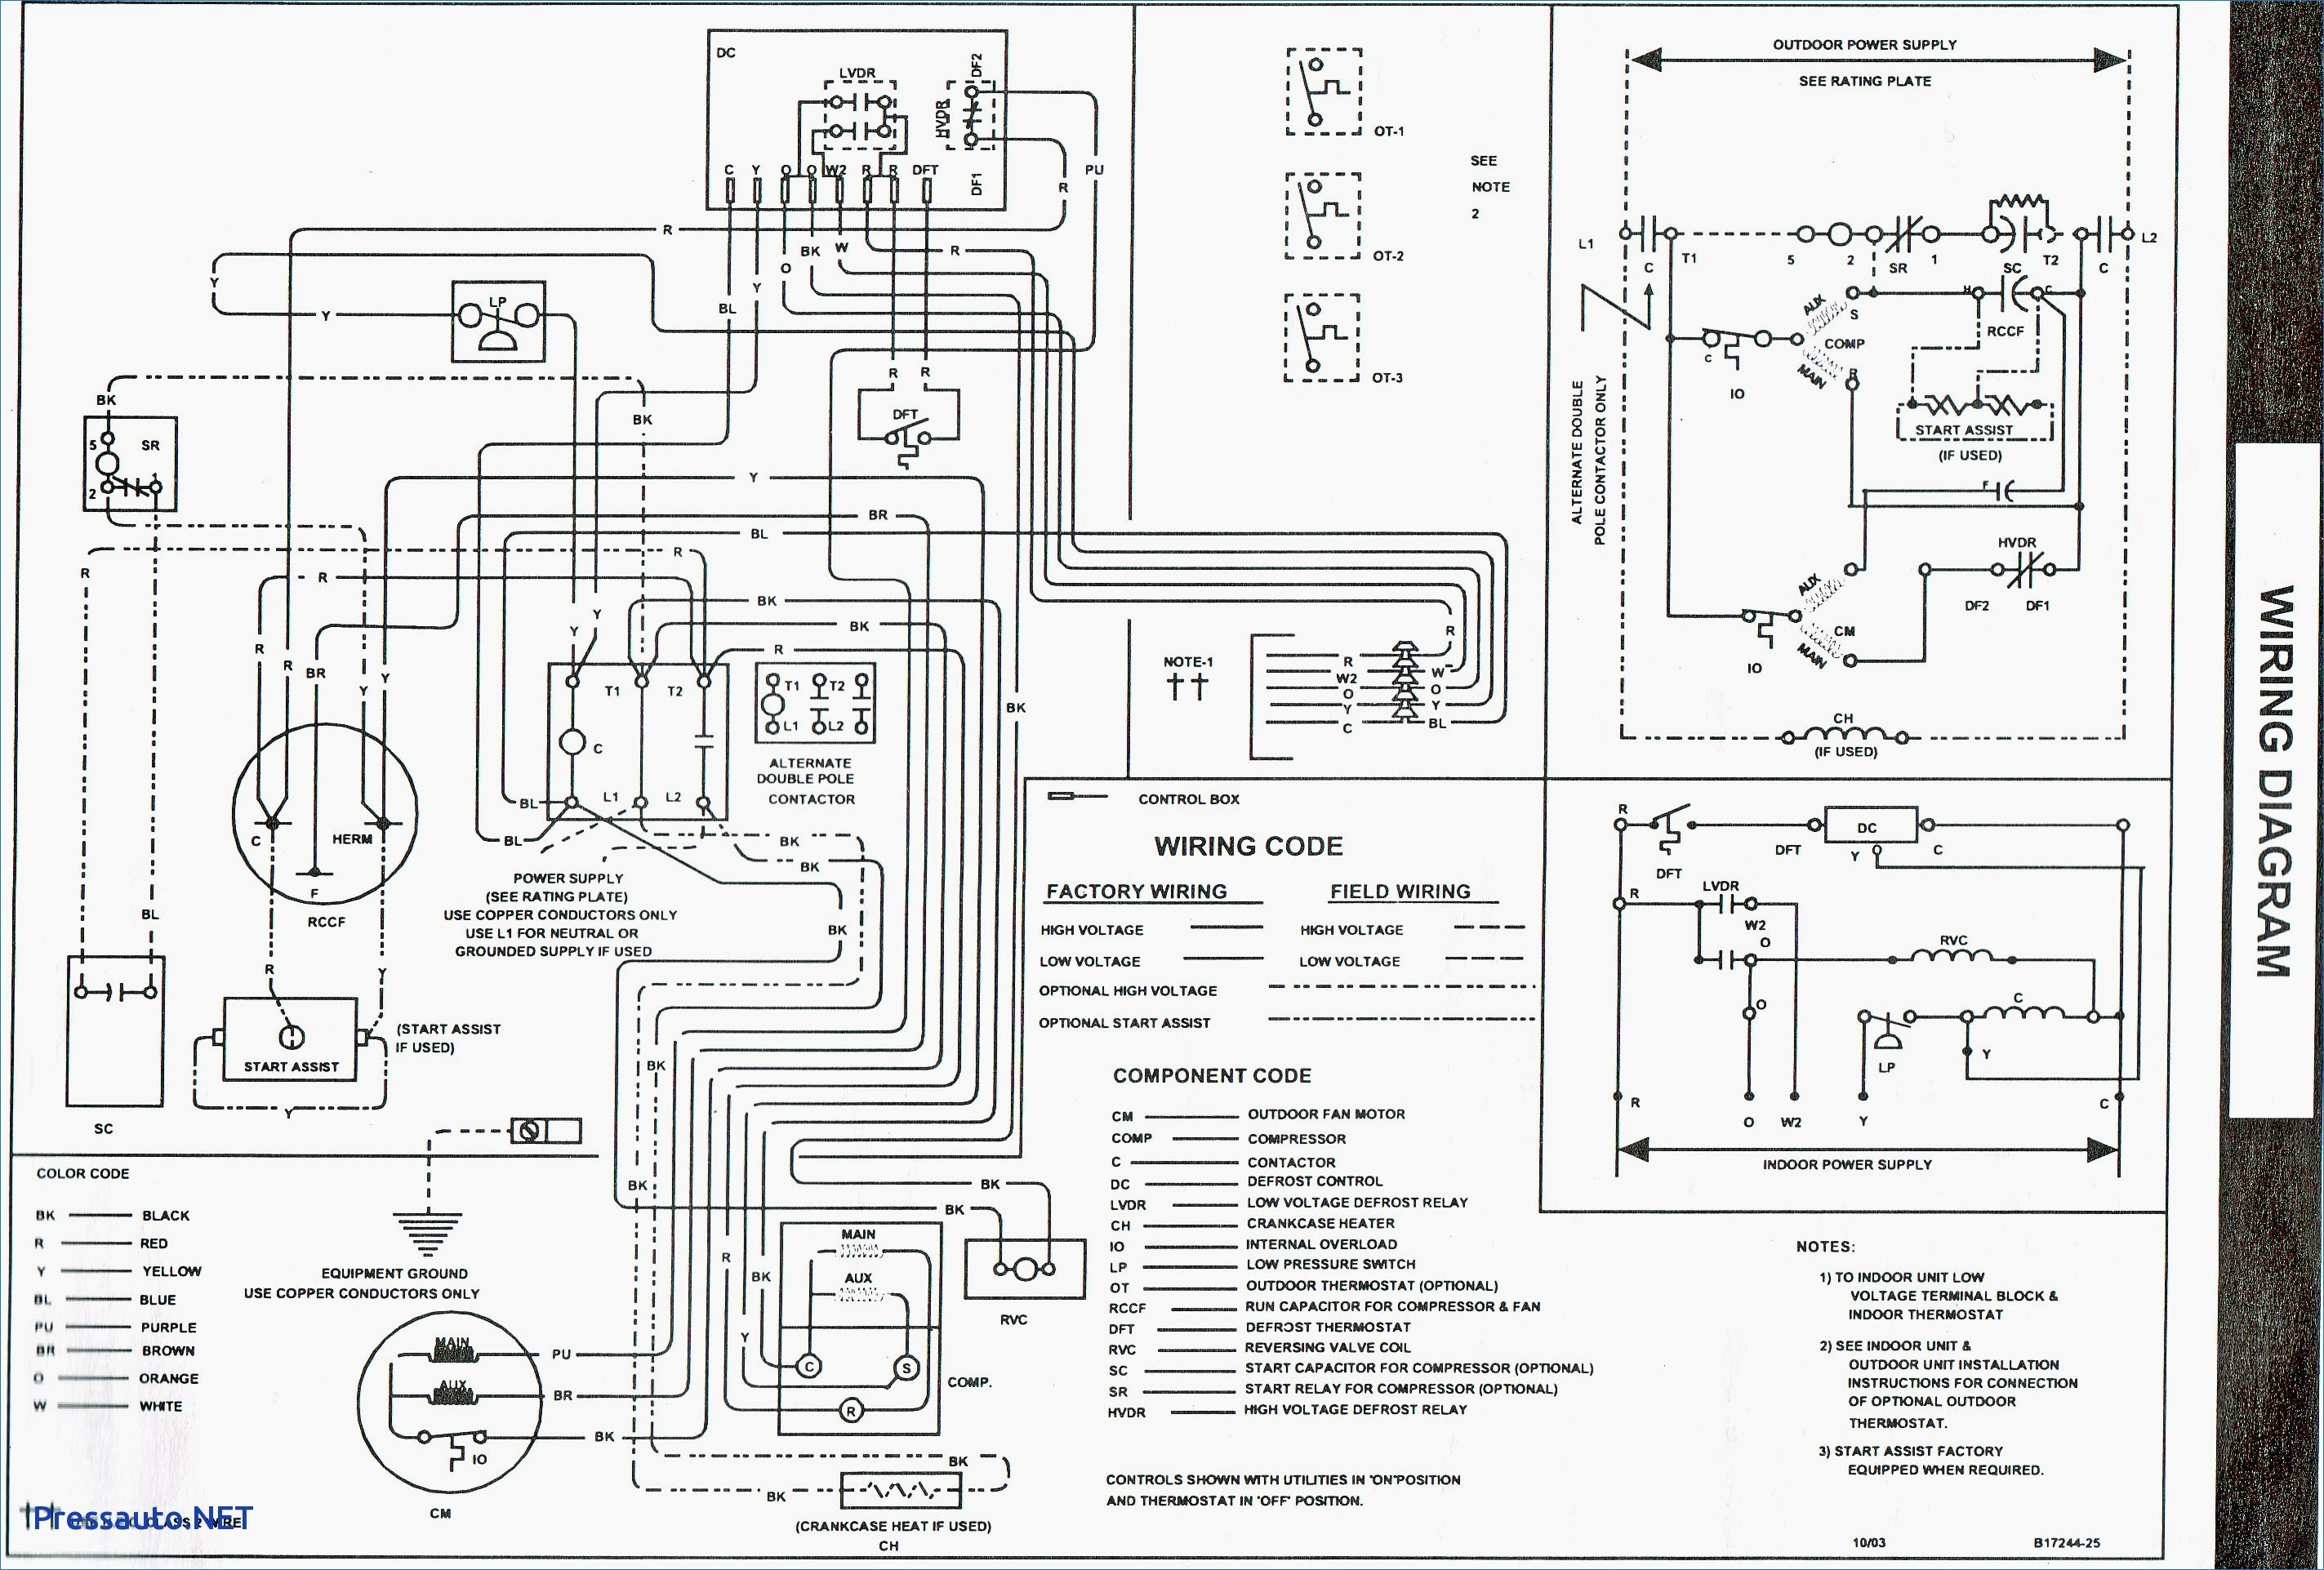 goodman manufacturing wiring diagrams pcbdm133